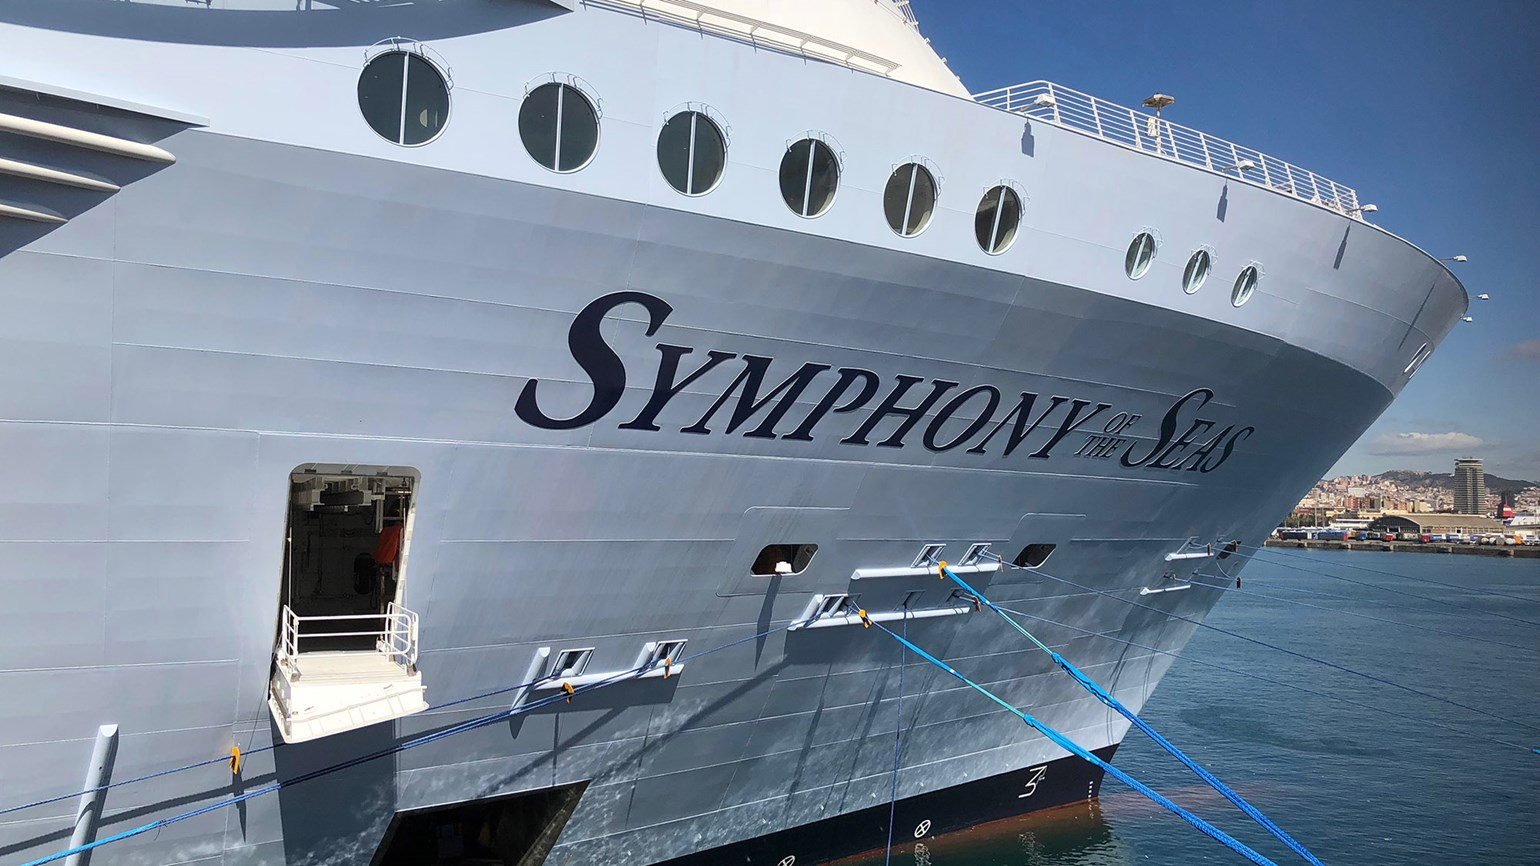 Symphony of the Seas surprises and delights with tech touches